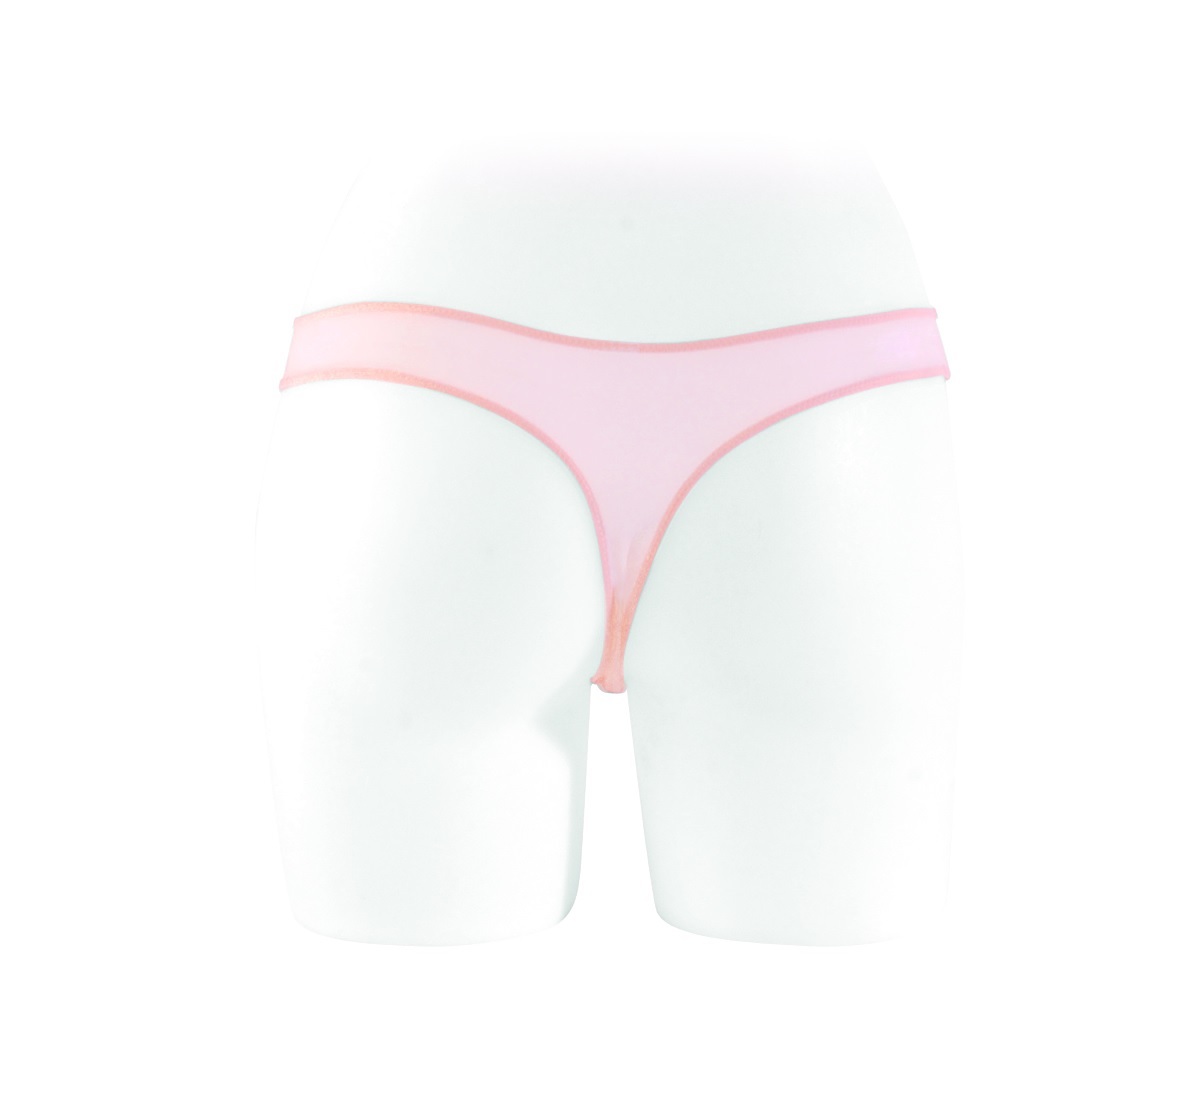 Maison Close tanga / Masion Close thong